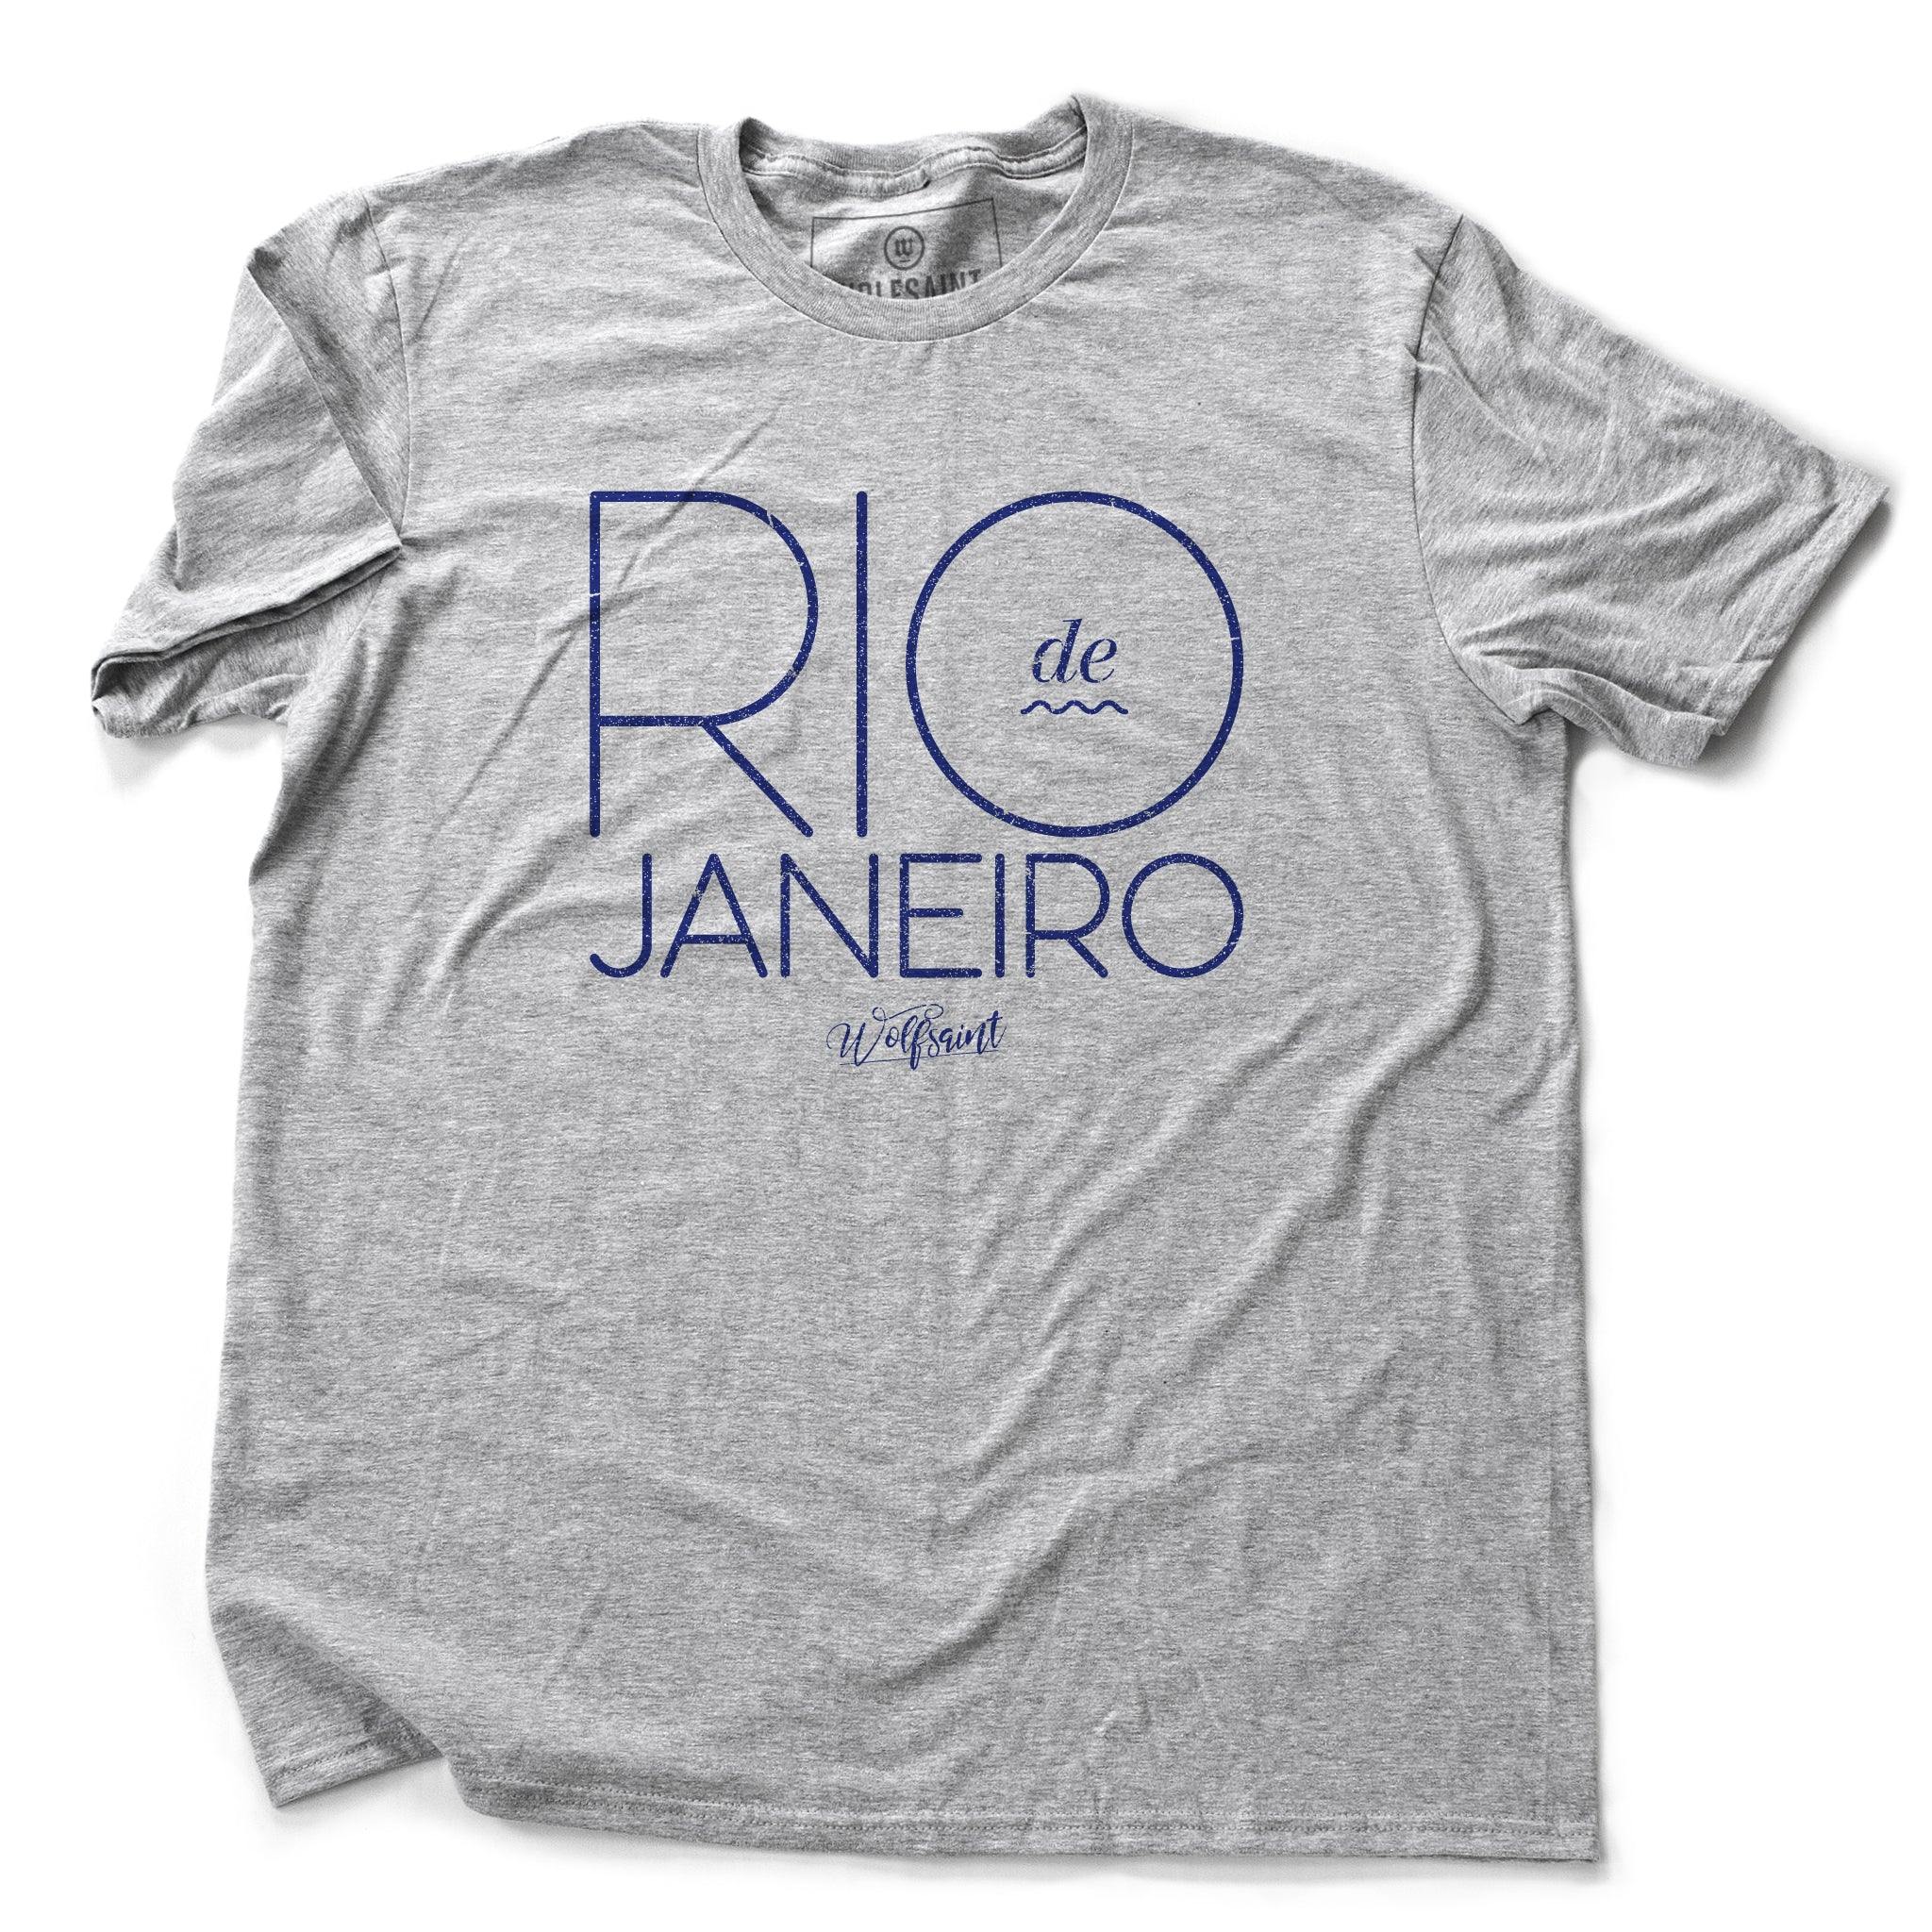 An elegant, retro design fashion t-shirt with RIO DE JANEIRO in large blue/purple typography in a thin font on Athletic Gray Heather. The Wolfsaint script logo is below. From Wolfsaint.net